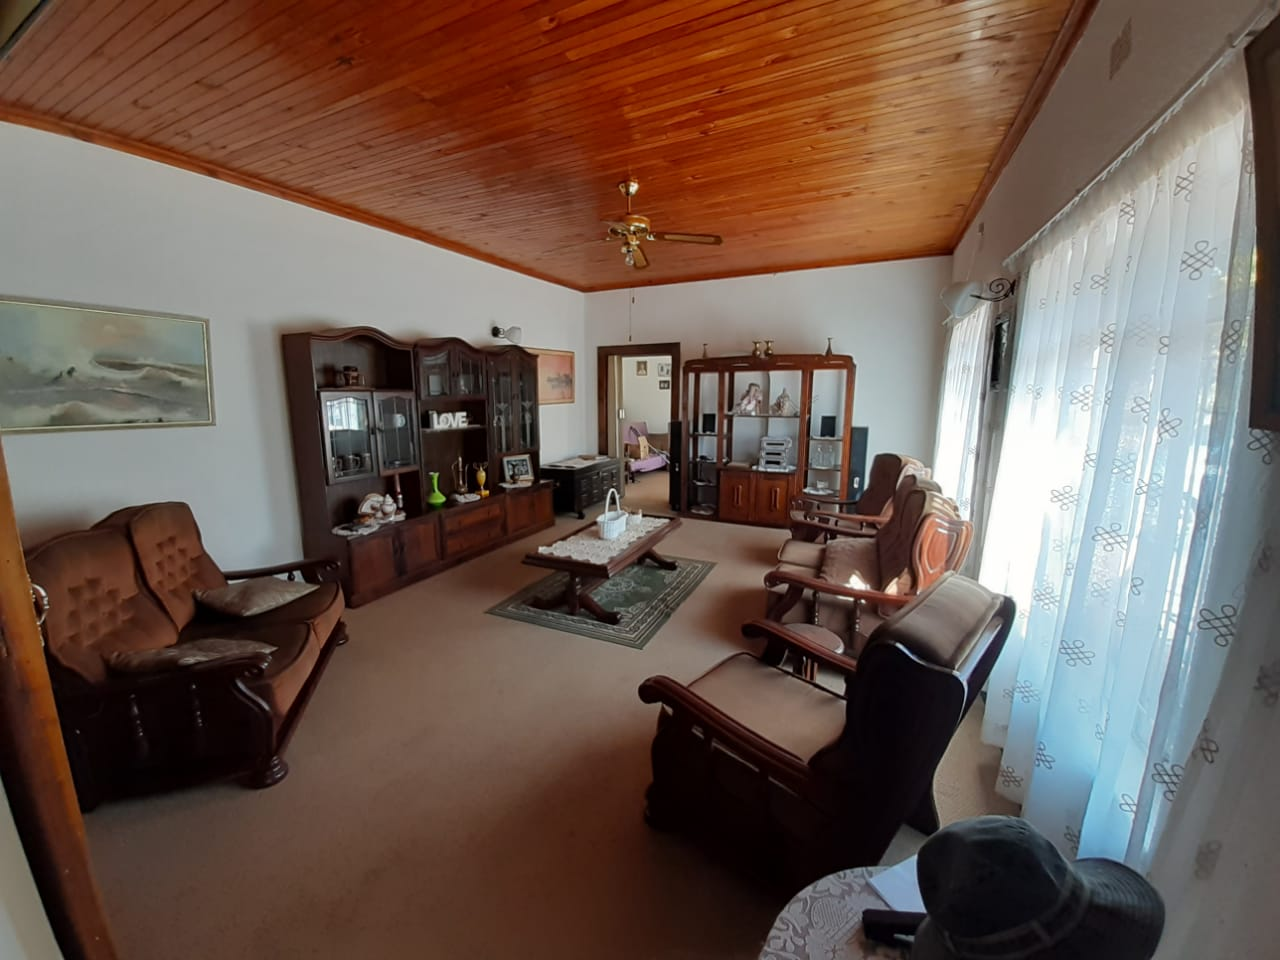 House in Parys - WhatsApp Image 2021-07-15 at 14.04.02 (1).jpeg